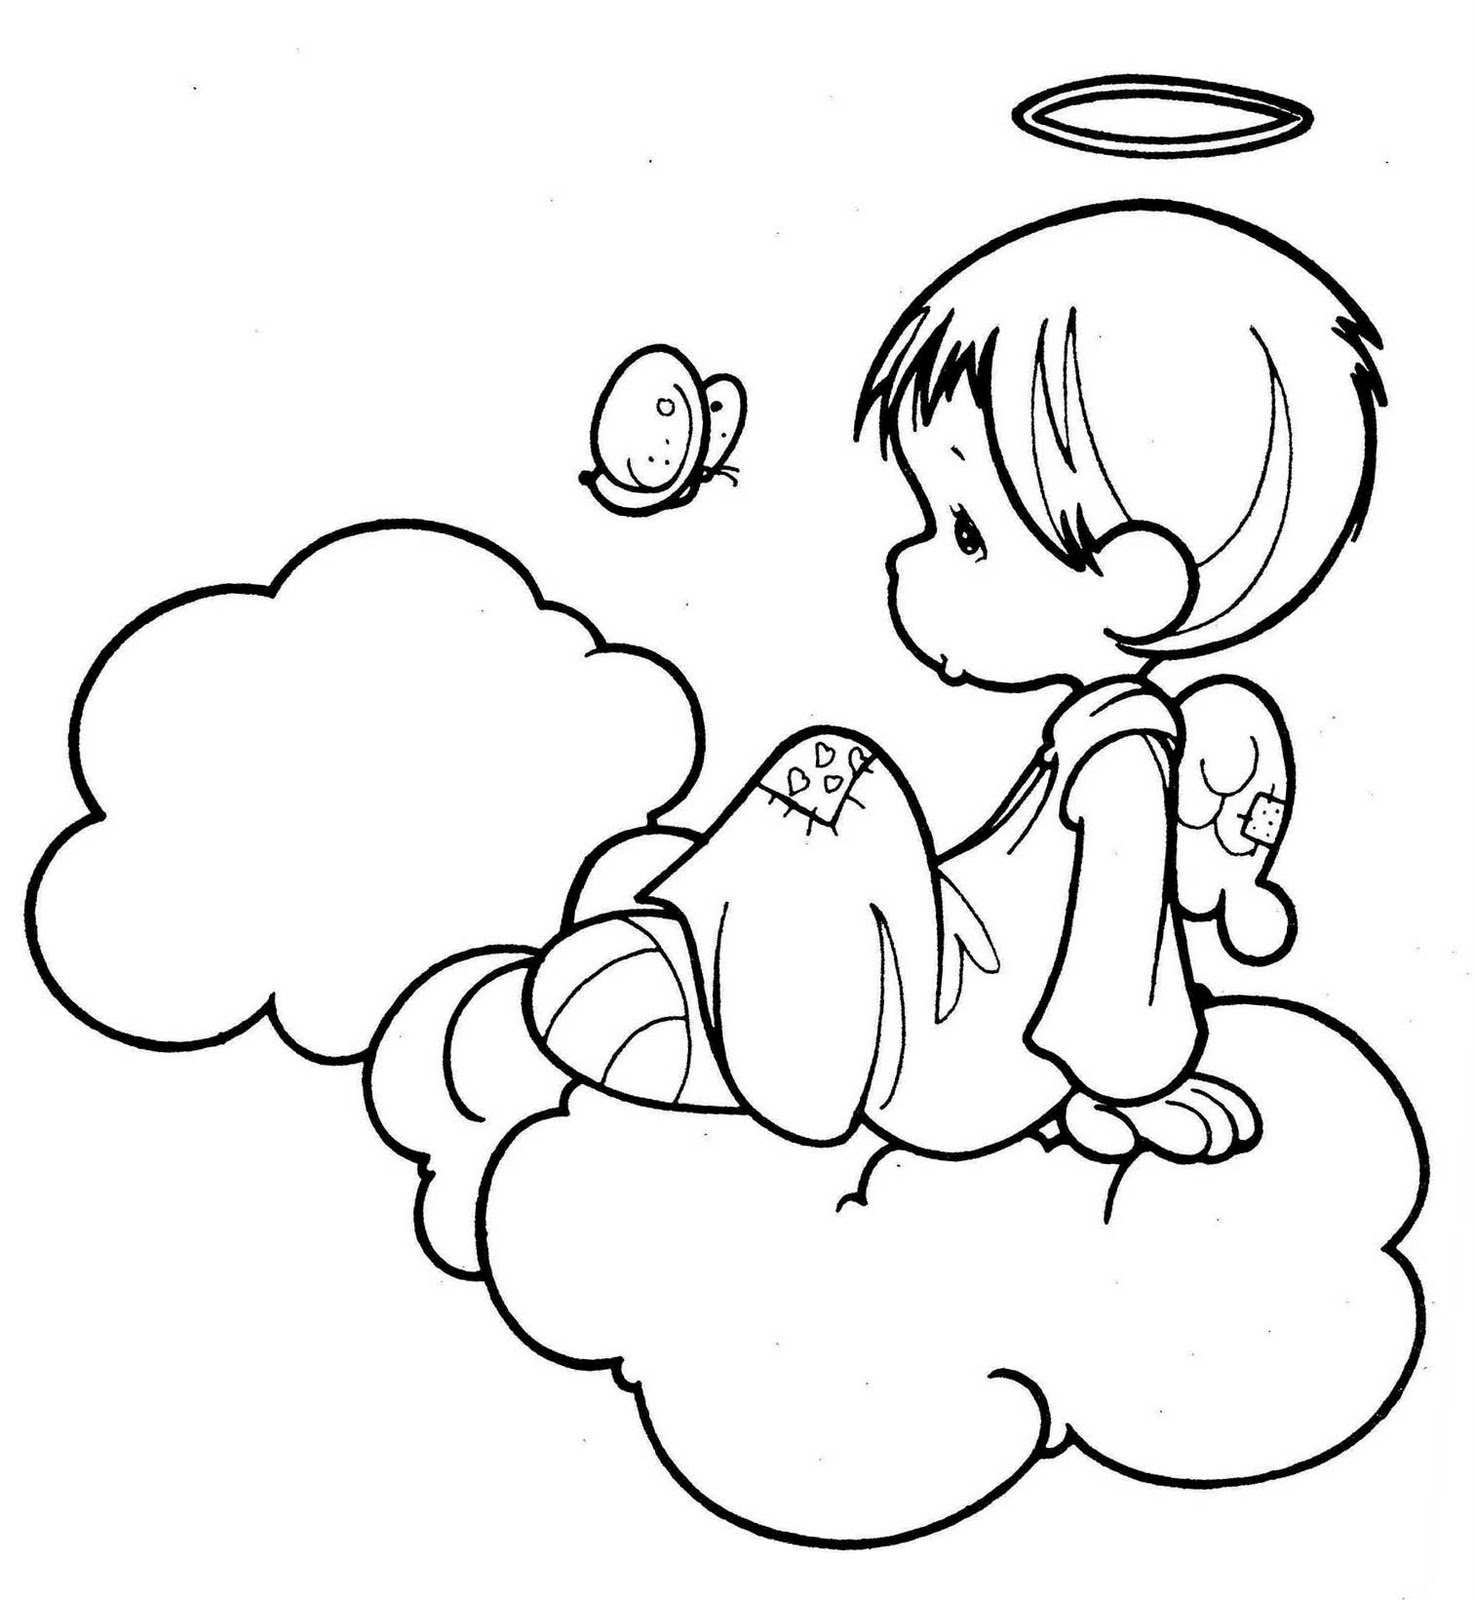 angels worksheets and coloring pages - photo#18